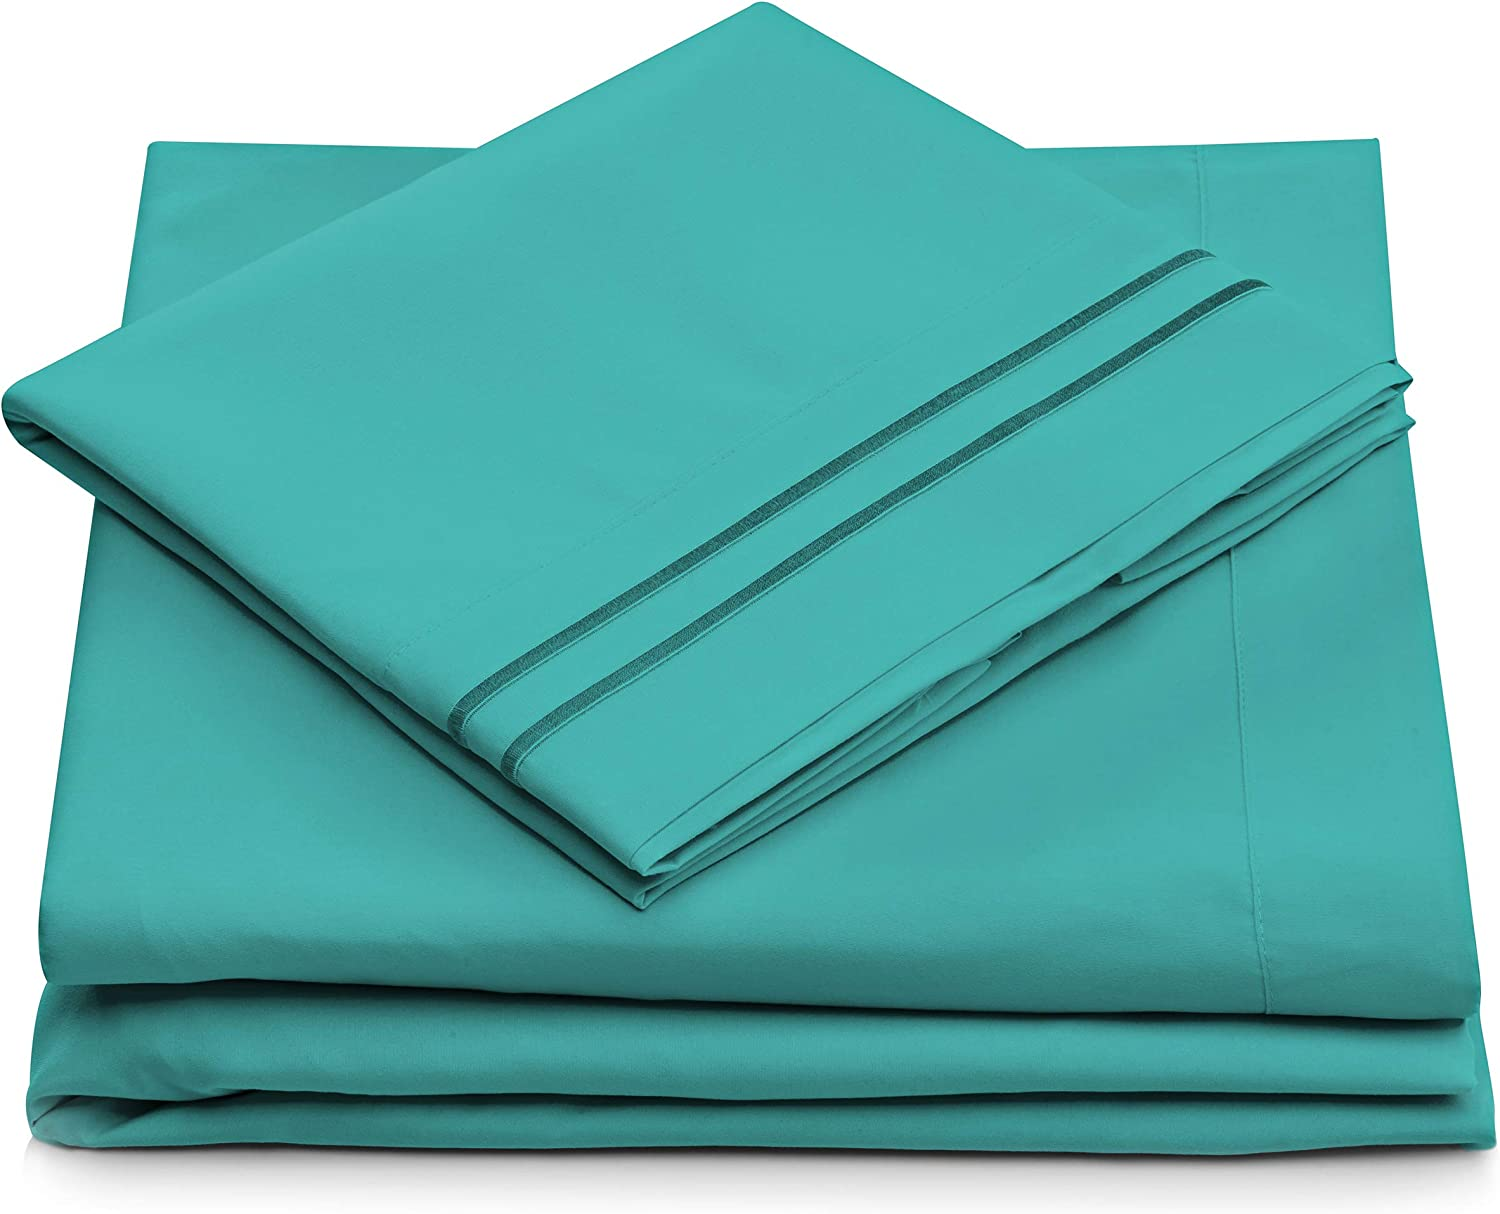 Queen Size Bed Sheets - Turquoise Luxury Sheet Set - Deep Pocket - Super Soft Hotel Bedding - Cool & Wrinkle Free - 1 Fitted, 1 Flat, 2 Pillow Cases - Teal Queen Sheets - 4 Piece